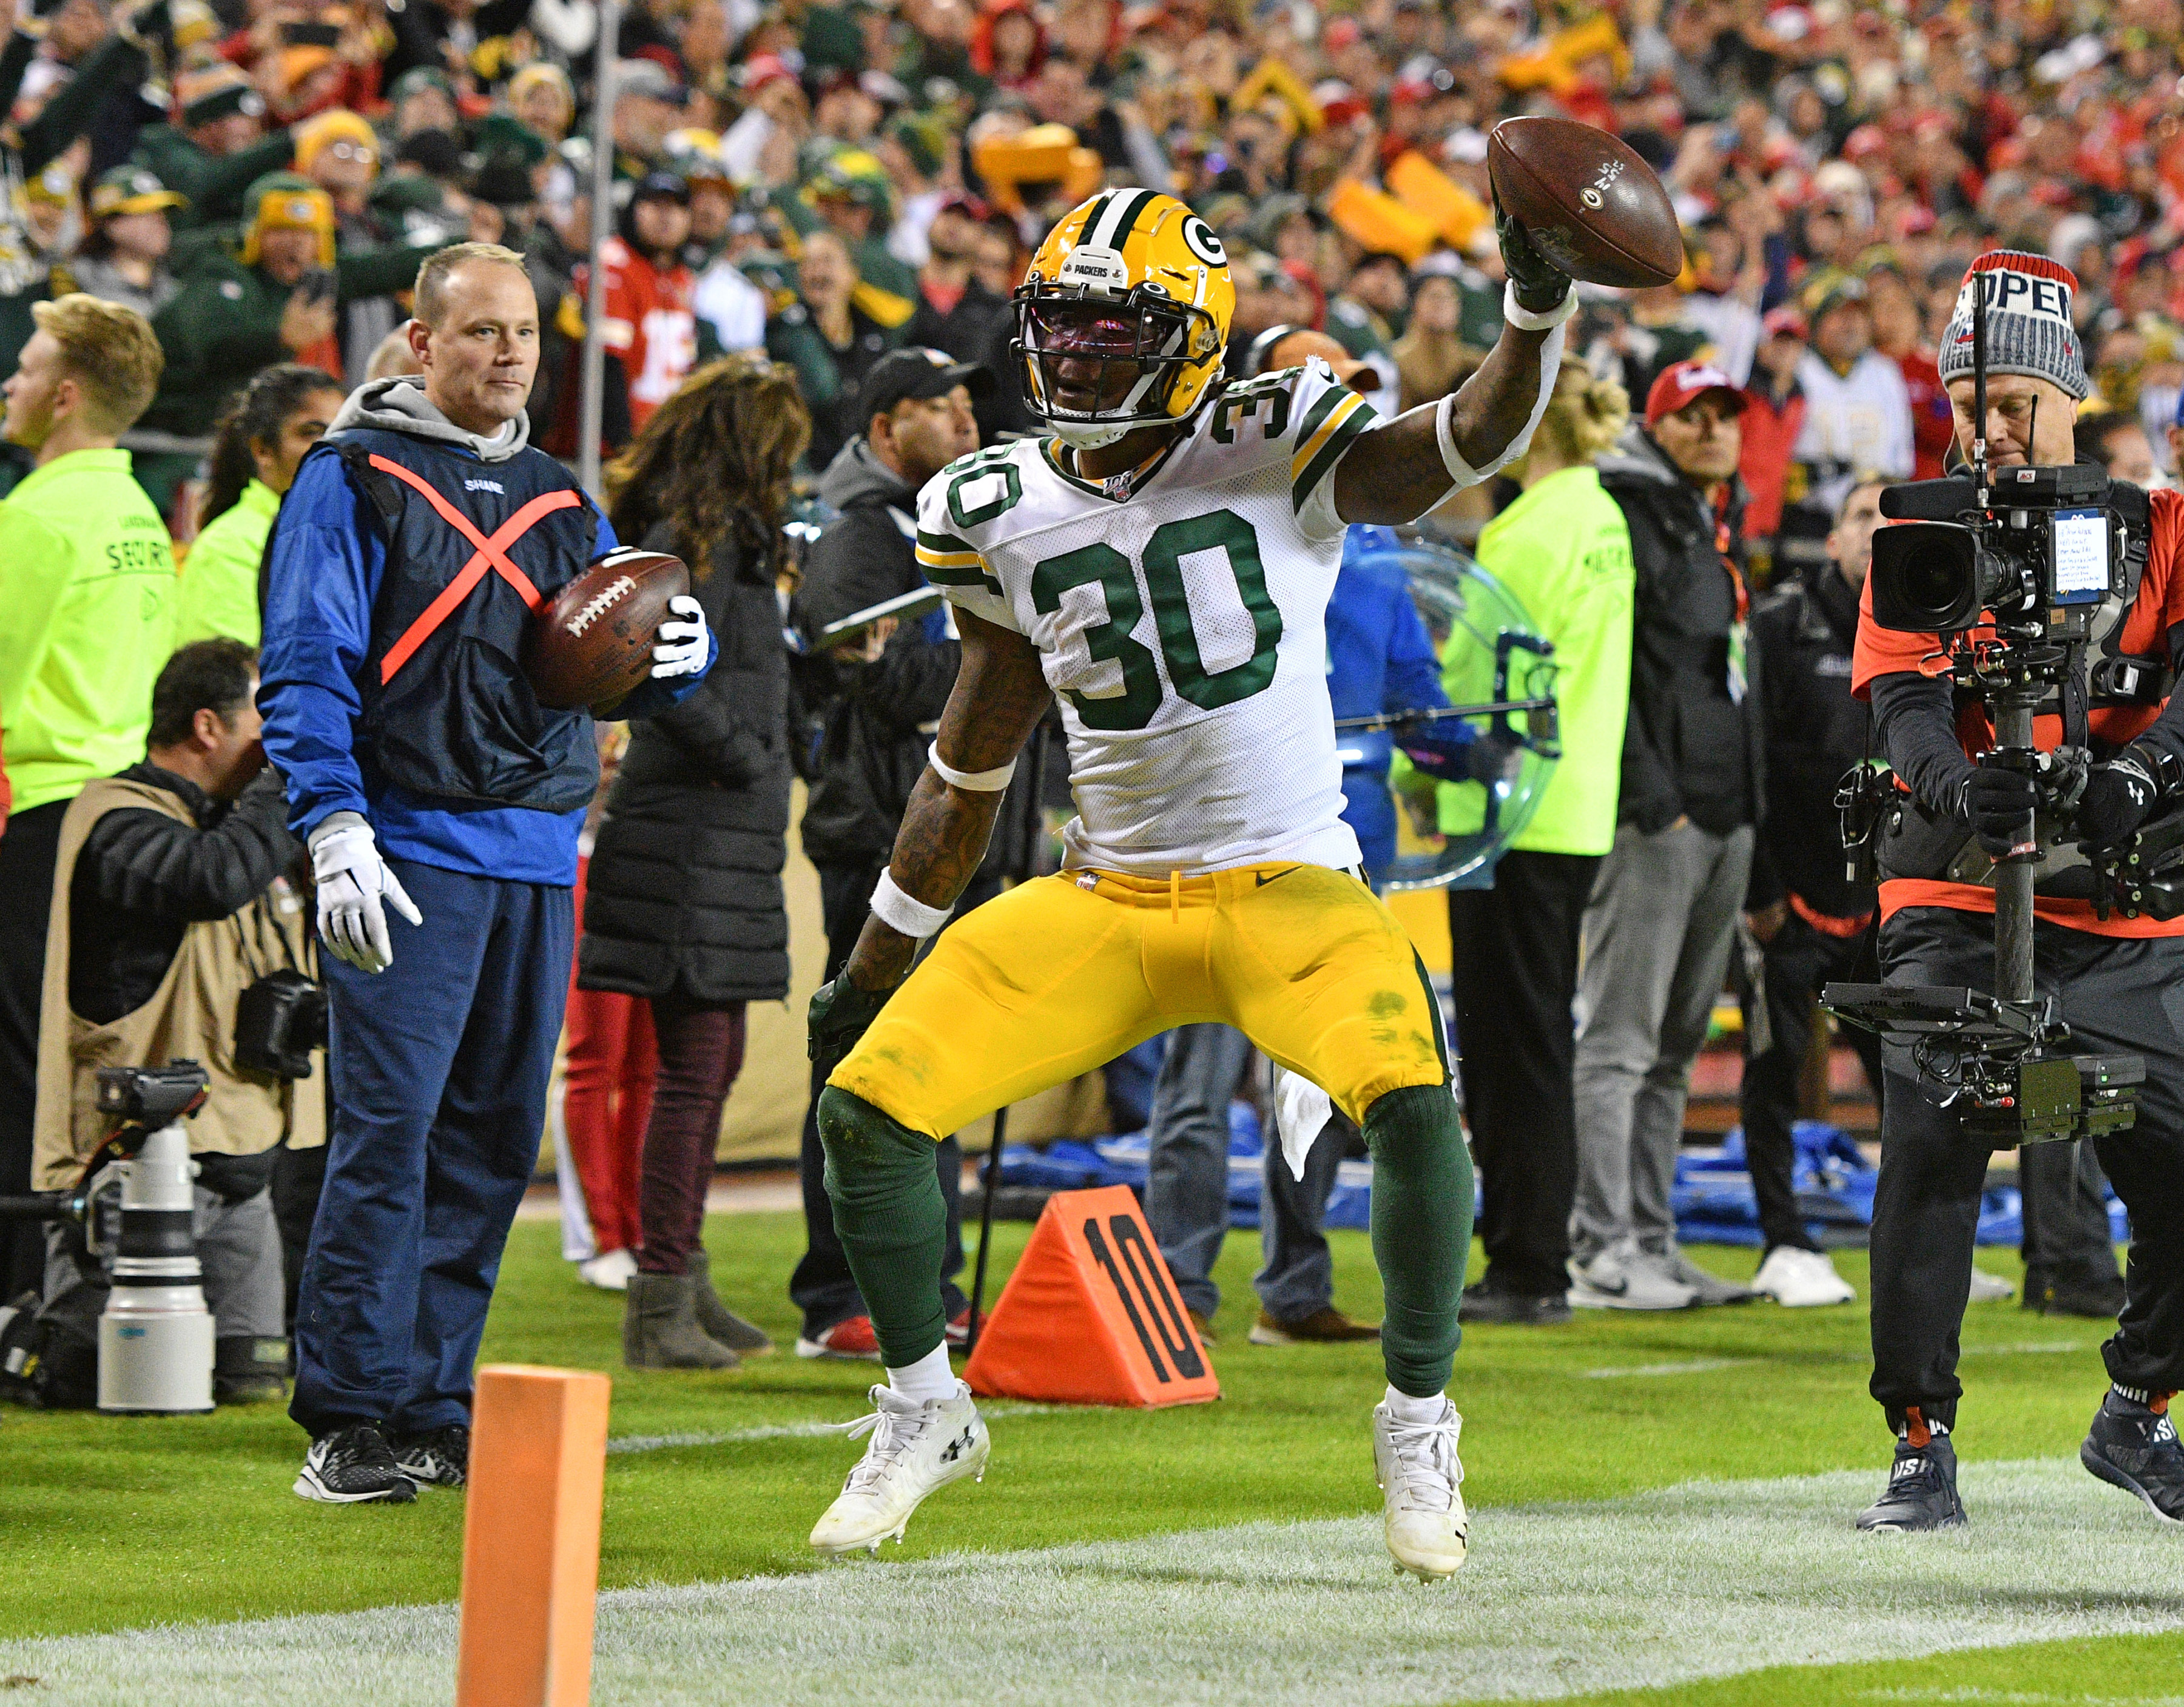 Oct 27, 2019; Kansas City, MO, USA; Green Bay Packers running back Jamaal Williams (30) celebrates after scoring during the second half against the Kansas City Chiefs at Arrowhead Stadium. Mandatory Credit: Denny Medley-USA TODAY Sports